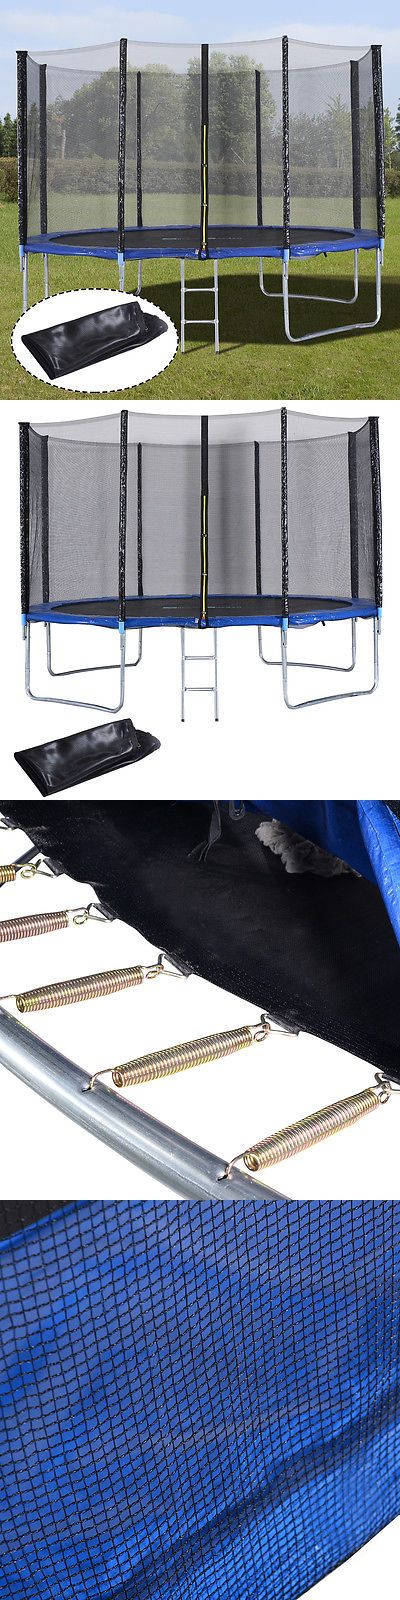 Trampolines 57275: New 12Ft Trampoline Combo Bounce Jump Safety Enclosure Net W/Spring Pad Ladder BUY IT NOW ONLY: $209.99